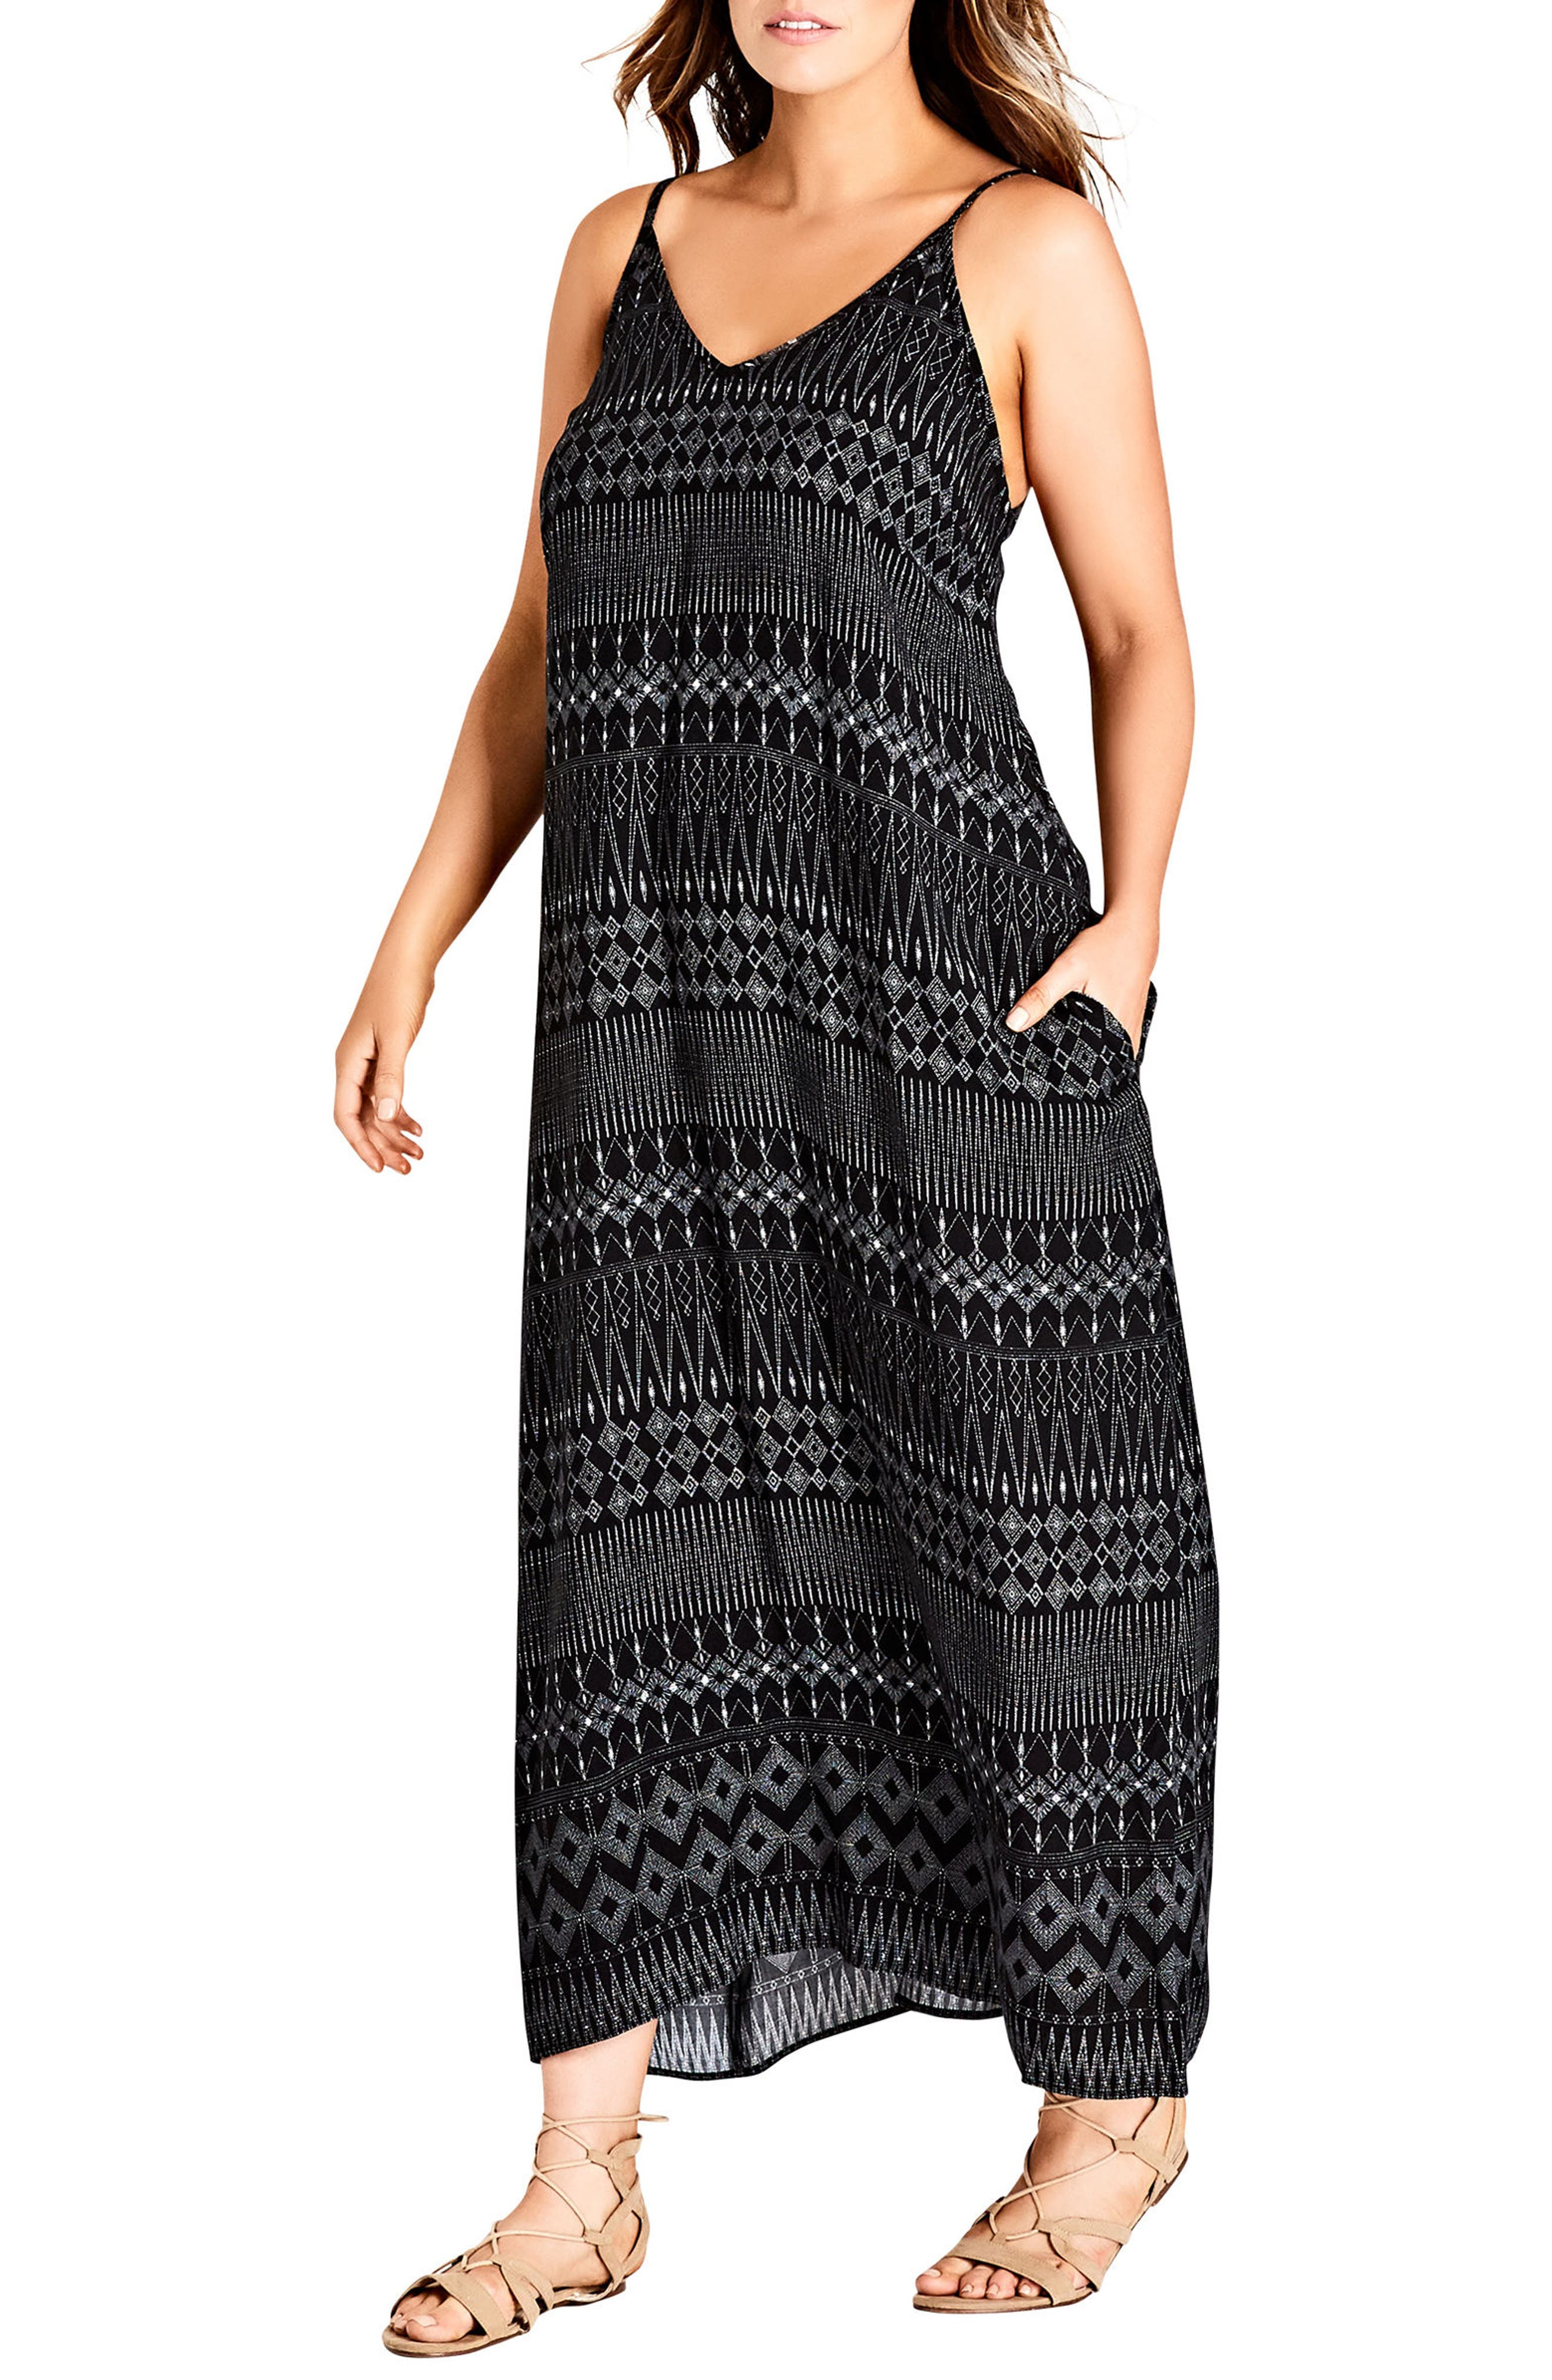 Safari Maxi Dress,                         Main,                         color, BLACK PRINT